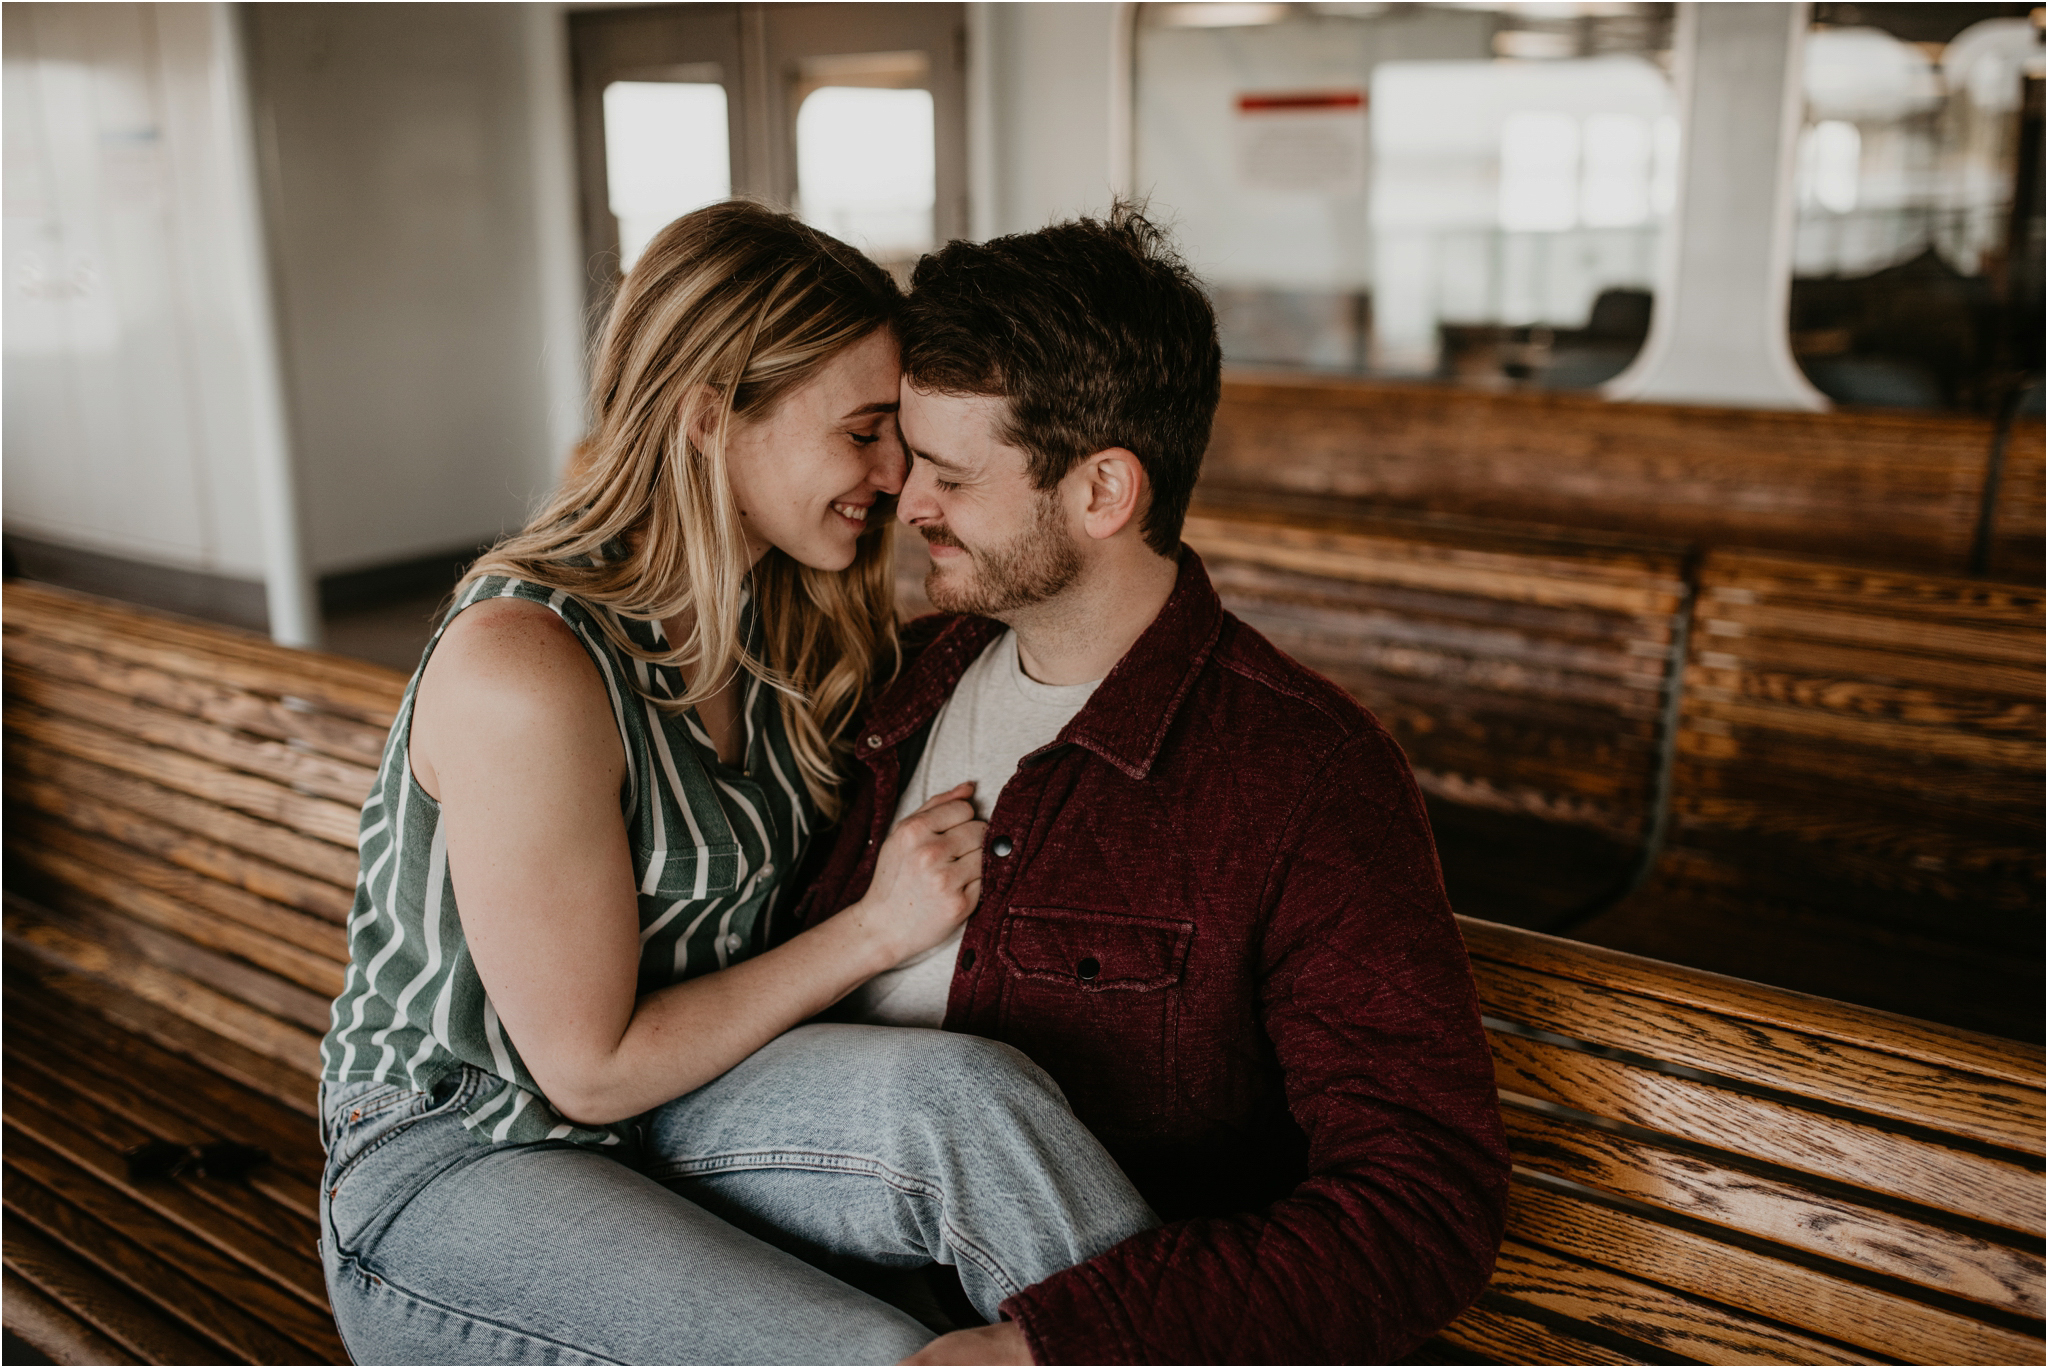 rile-and-ryan-fauntleroy-ferry-vashon-island-seattle-engagement-session-031.jpg